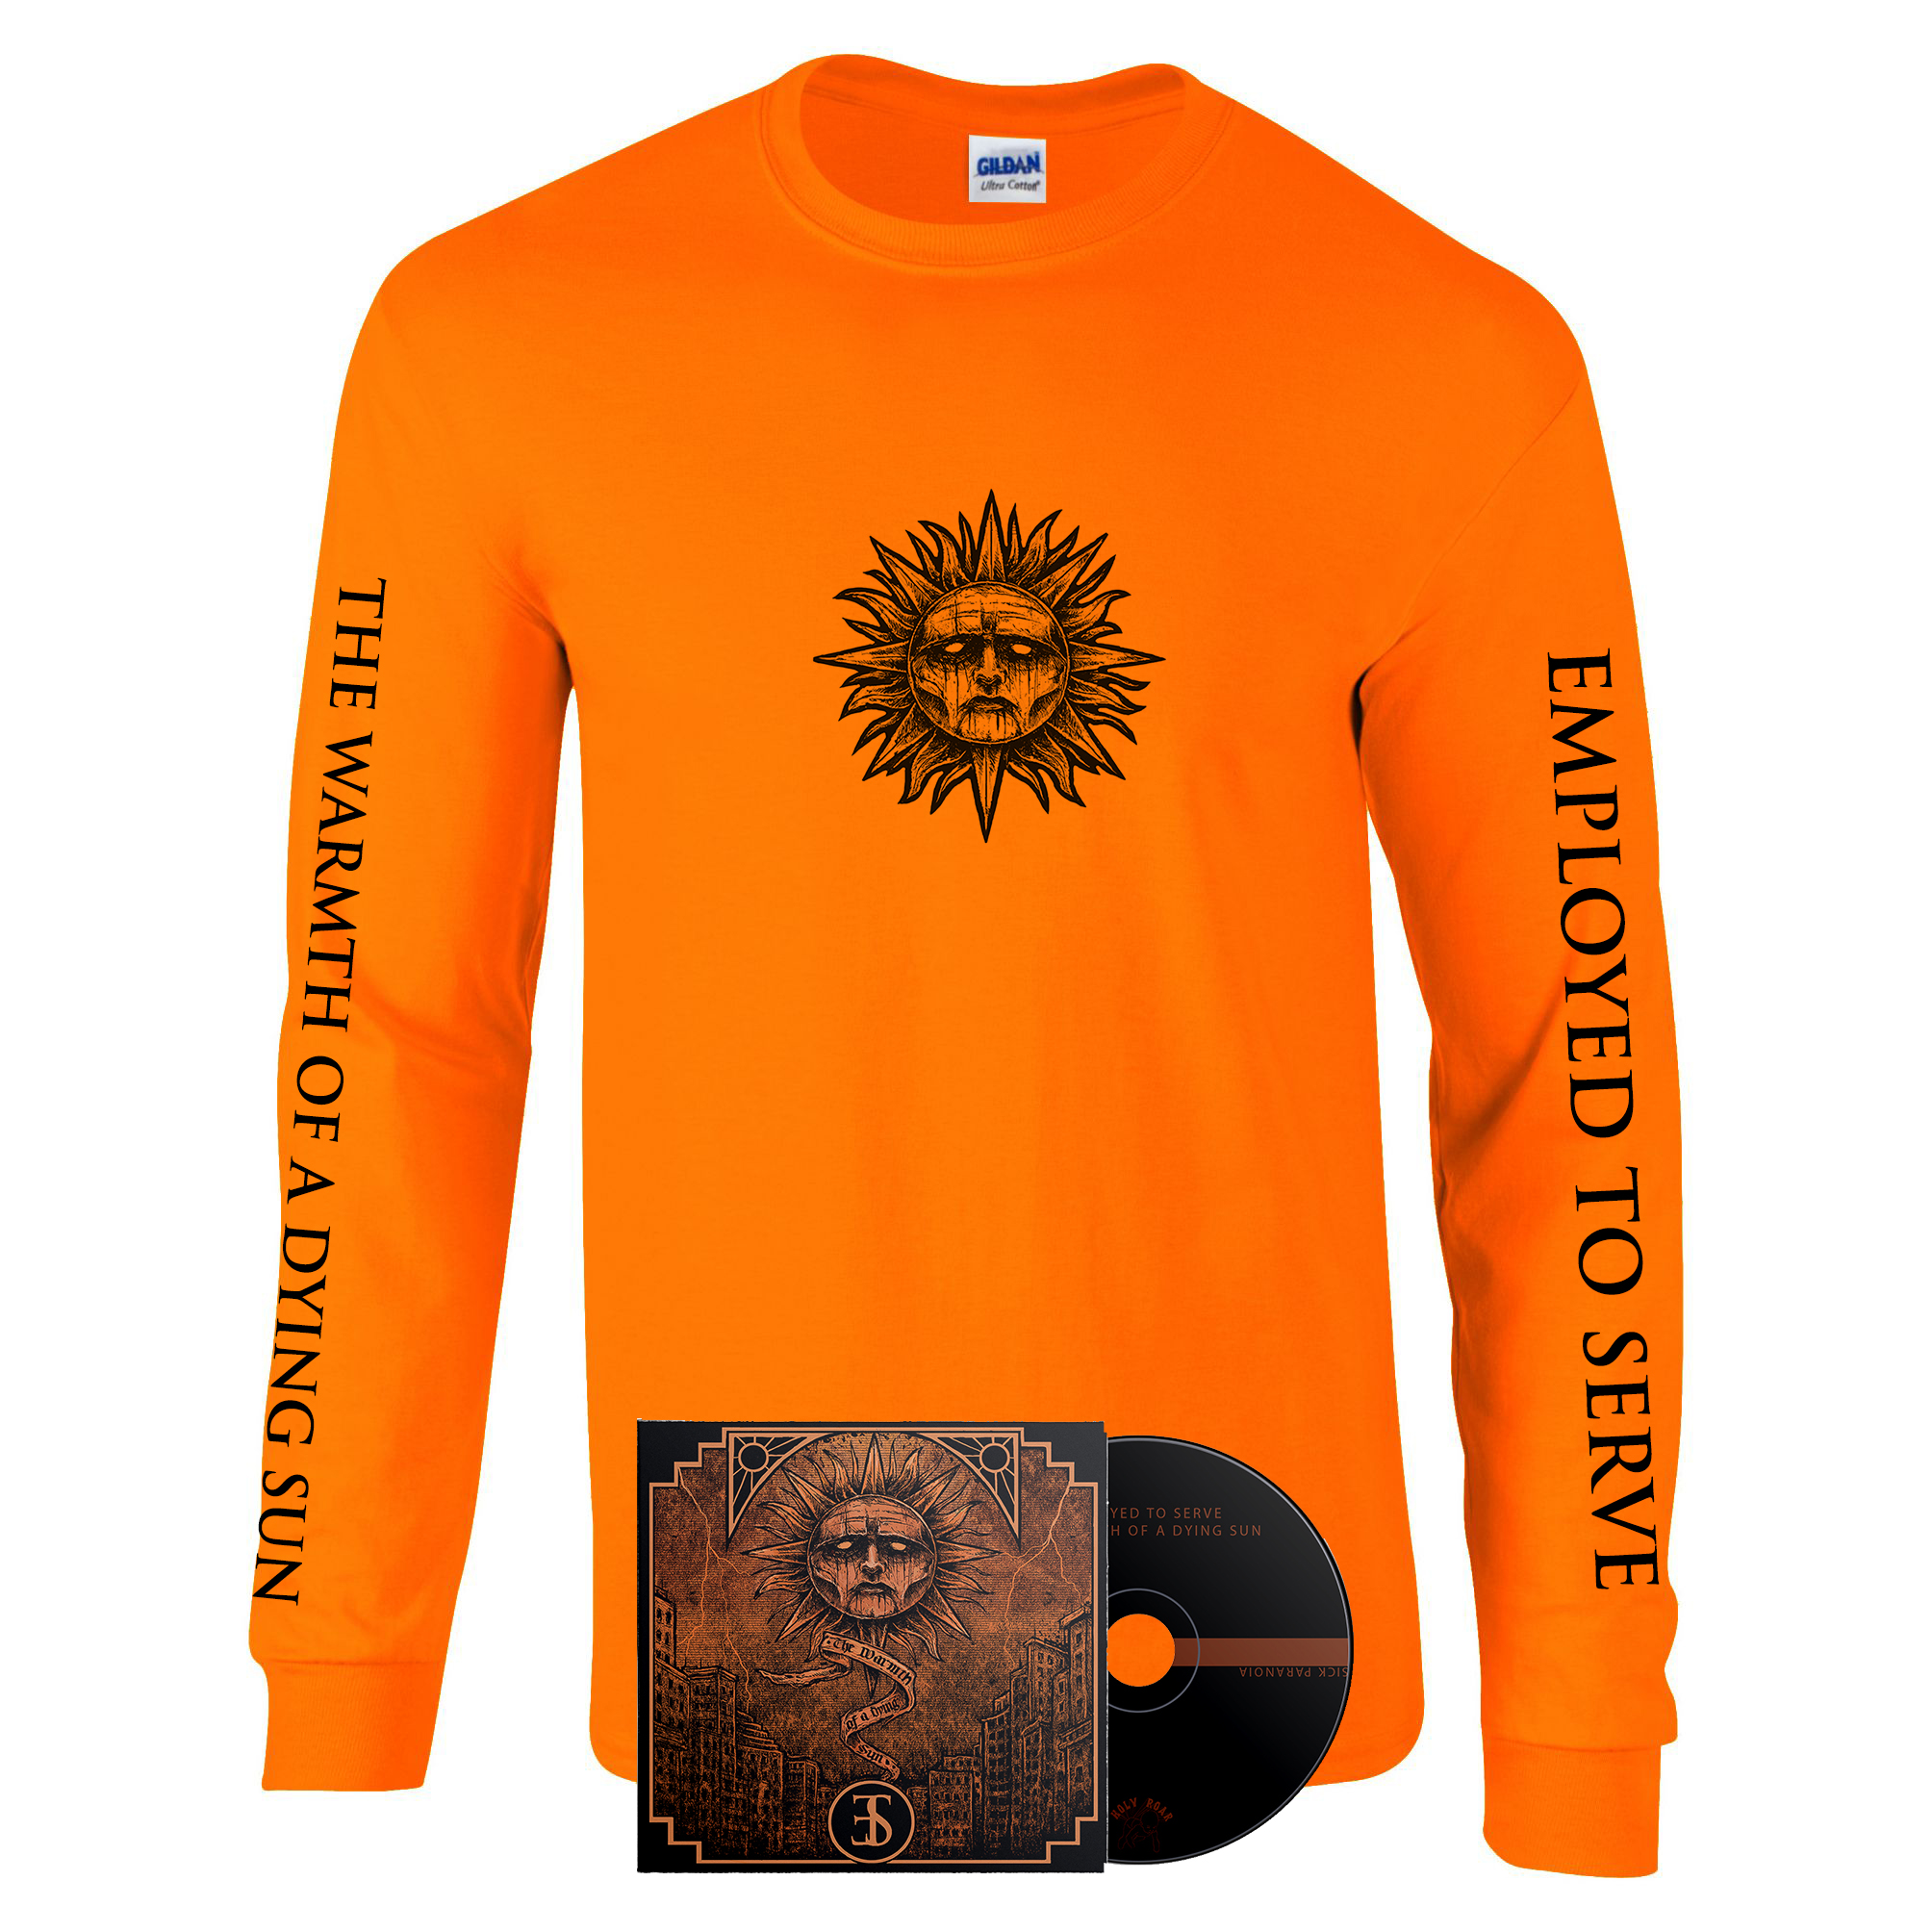 Employed To Serve - The Warmth Of A Dying Sun long sleeve + CD